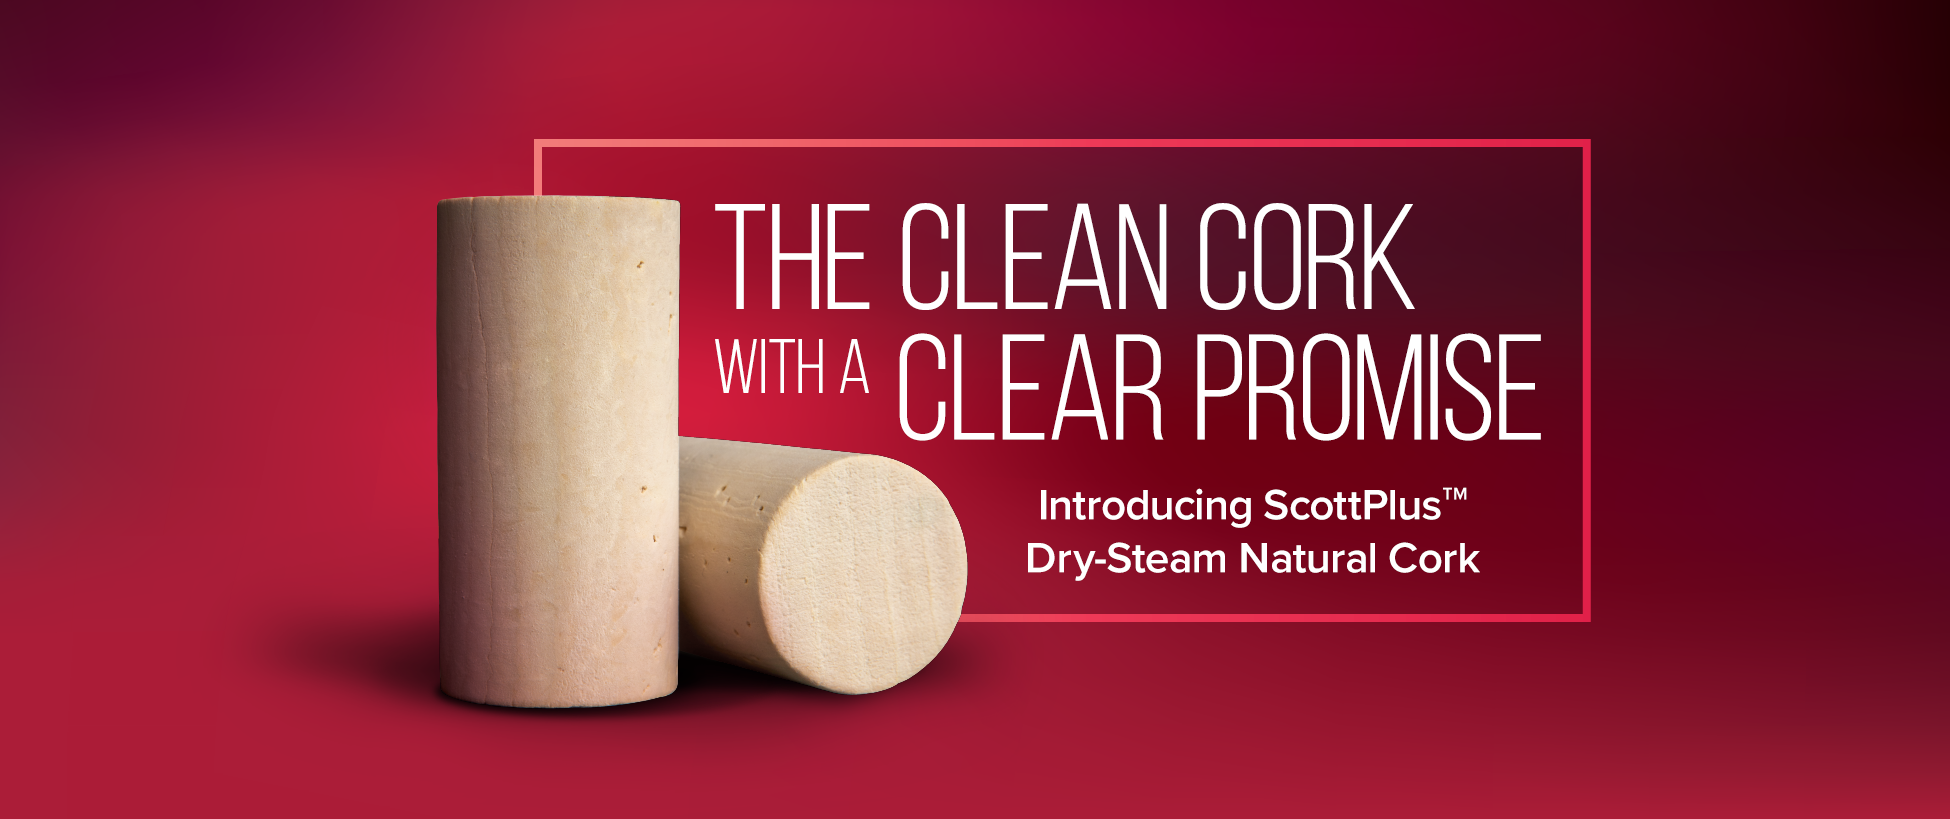 Scott Plus Cork: A Clean Cork with a Clear Promise